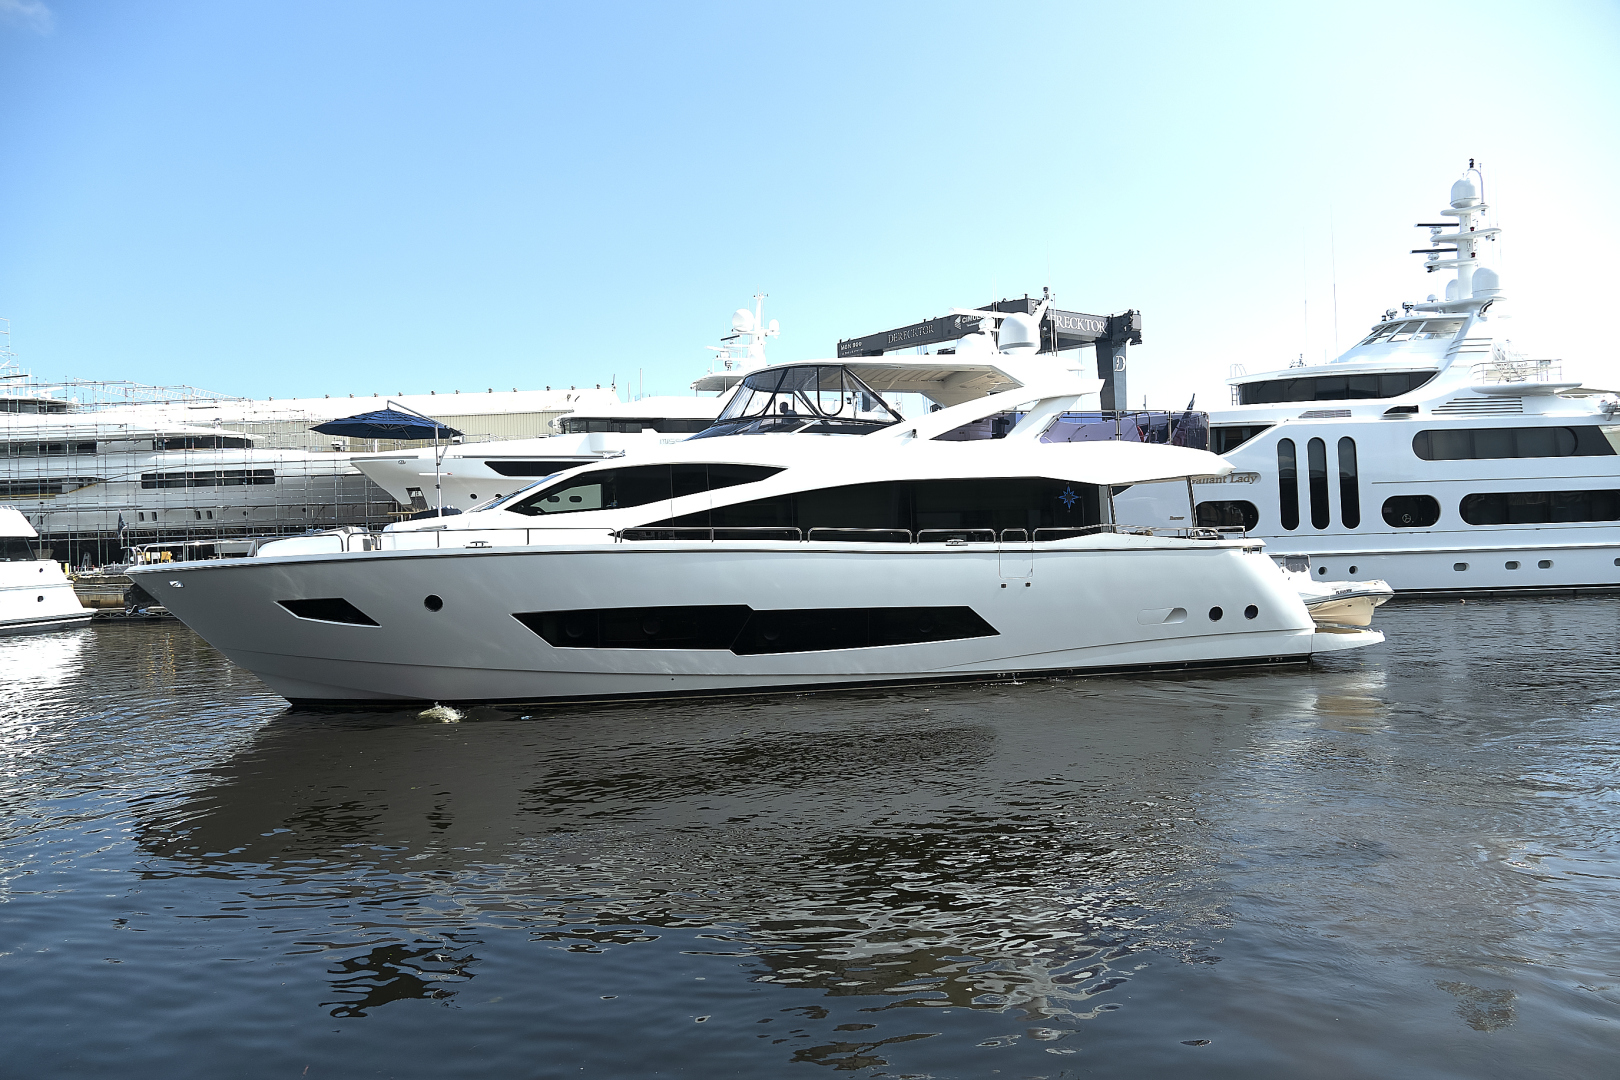 Sunseeker-86 Yacht 2019-Its Noon Somewhere Fort Lauderdale-Florida-United States-1556645 | Thumbnail